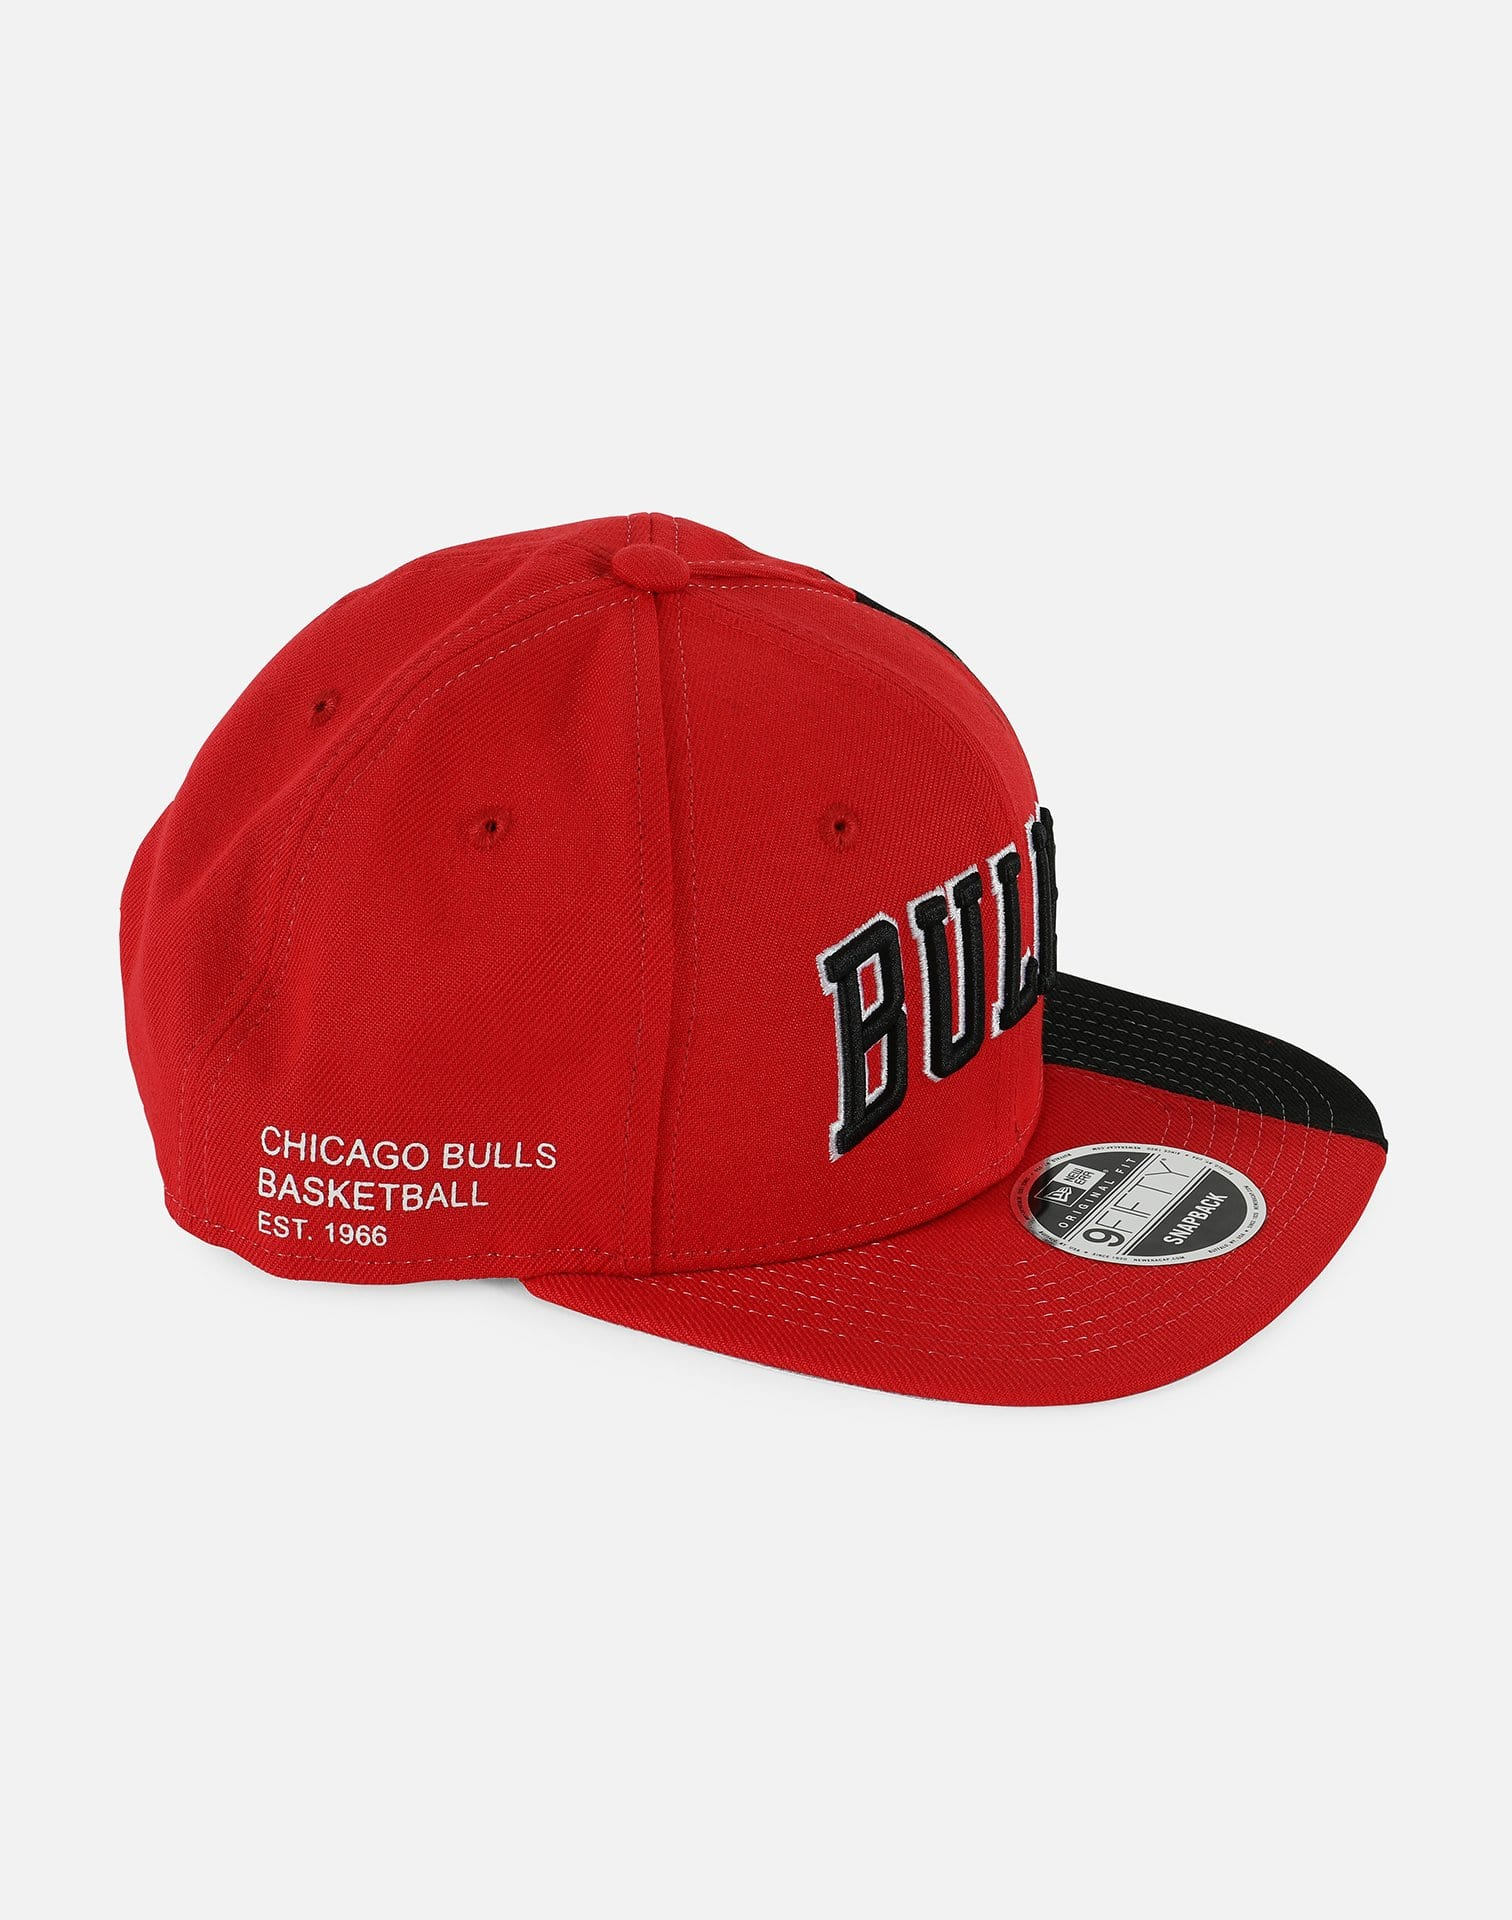 New Era Exclusive Customs NBA Chicago Bulls XL Logo 2 Tone Snapback Hat